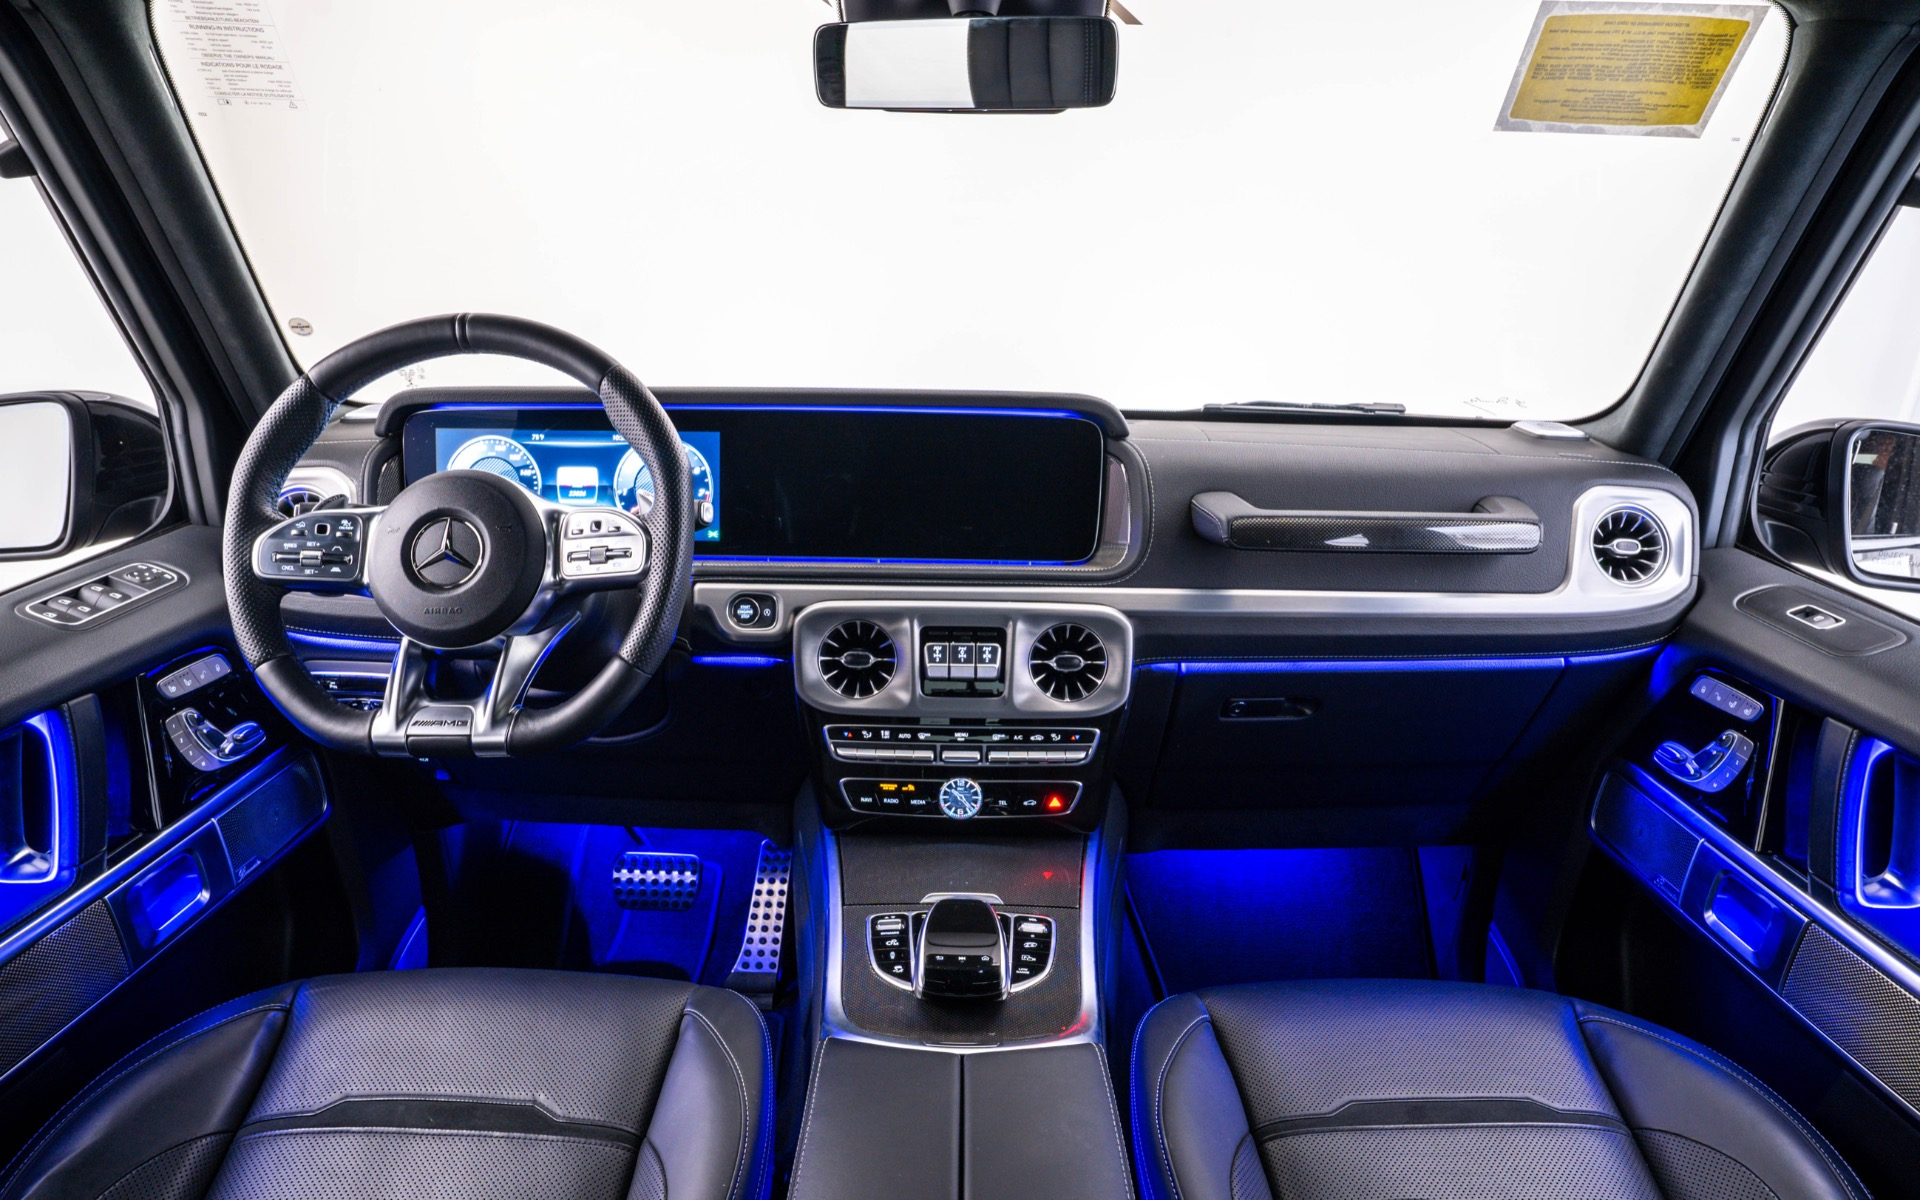 Used 2019 Mercedes-Benz G63 AMG 4x4 | Norwell, MA